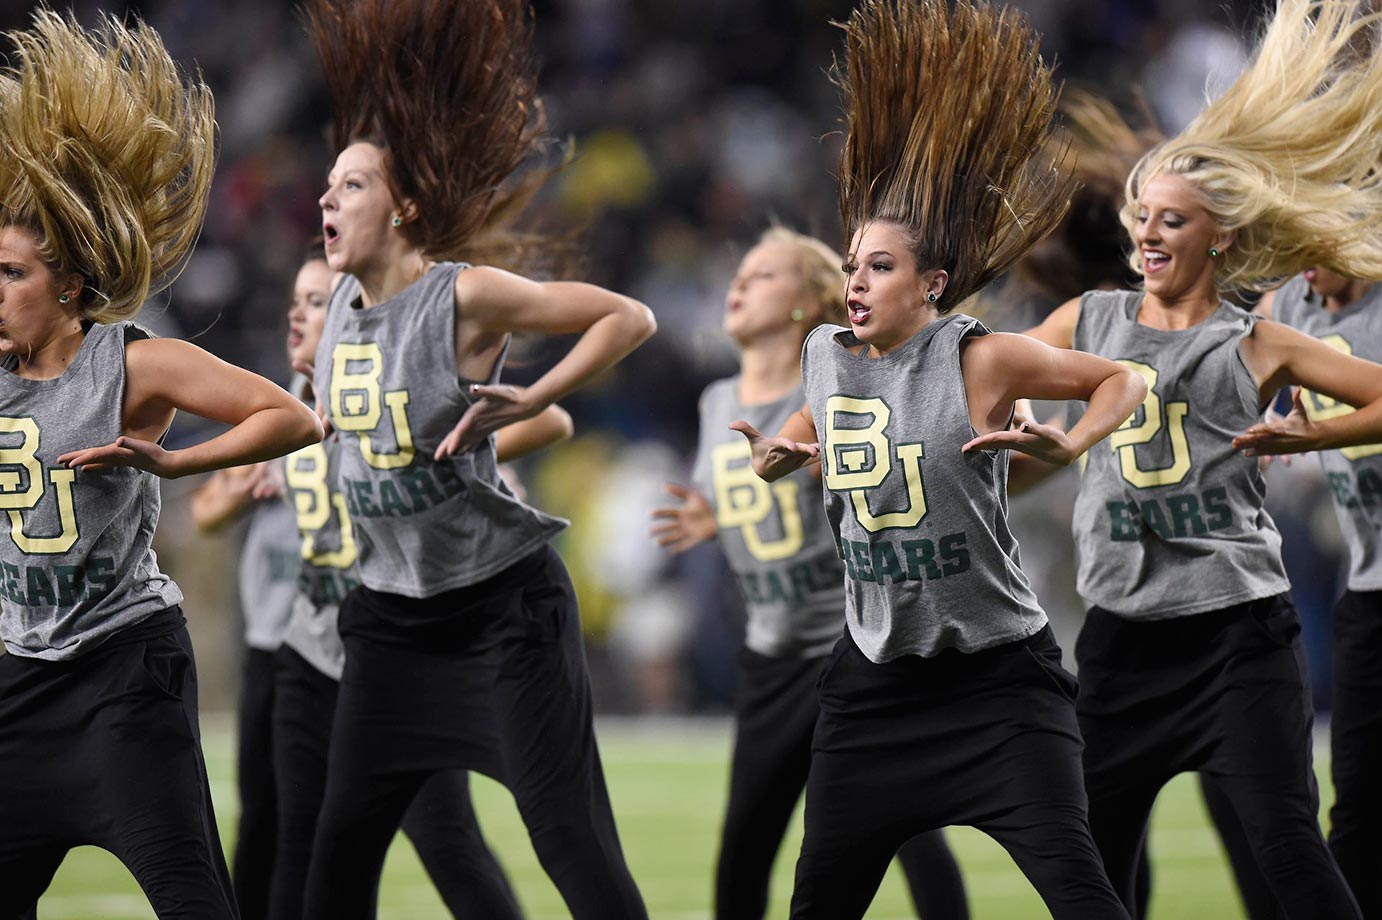 Baylor cheerleaders had hair issues at a game against Oklahoma.